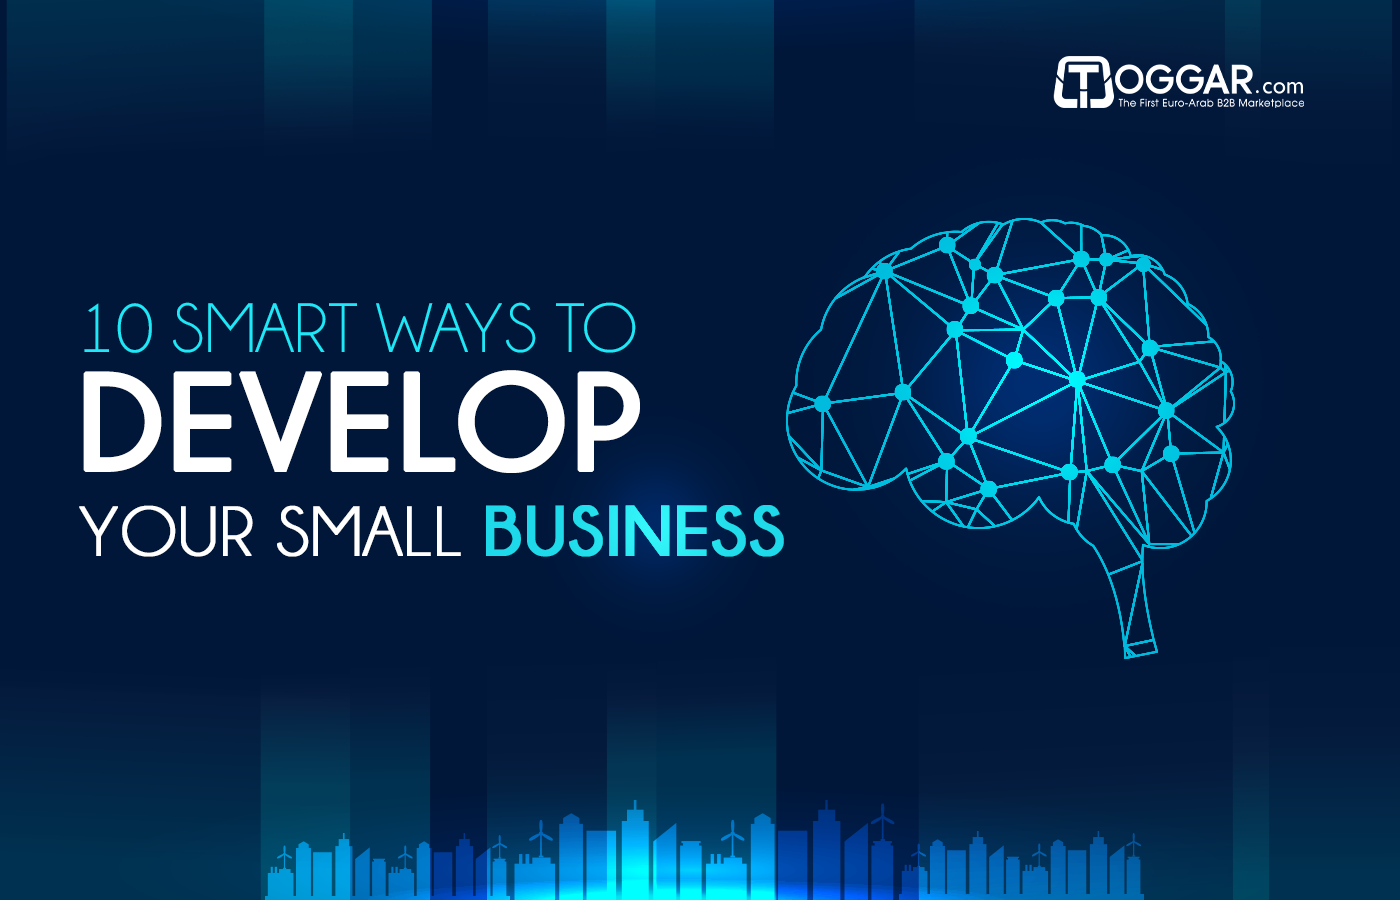 10 Smart Ways to Develop Your Small Business